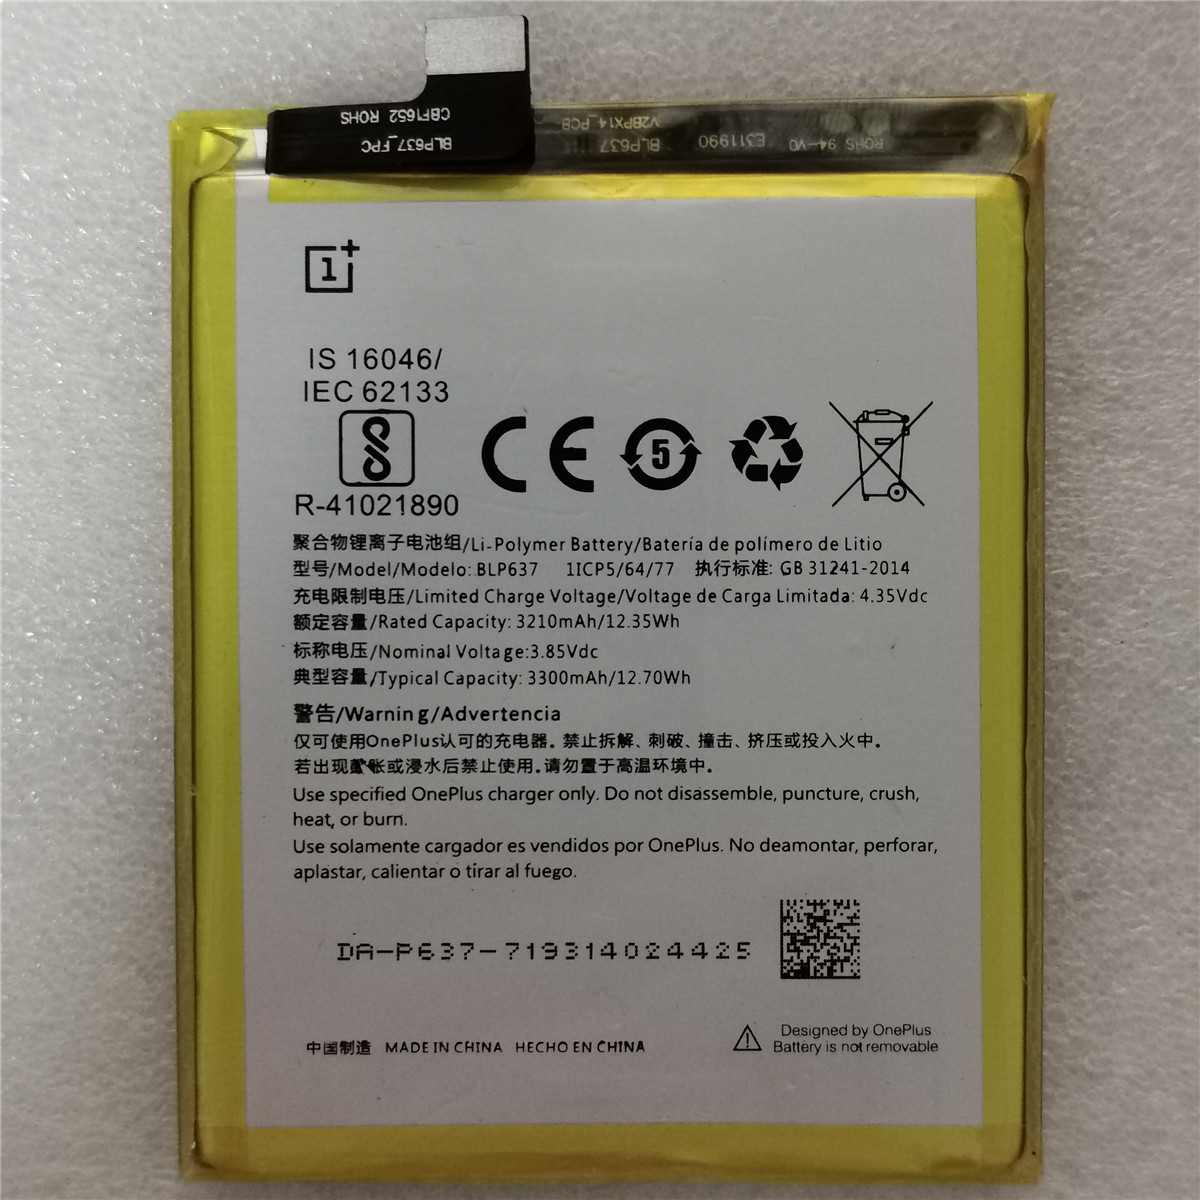 Original Replacement <font><b>Battery</b></font> For <font><b>OnePlus</b></font> 5 <font><b>5T</b></font> 3 3T 2 1 1+ BLP571 BLP597 BLP613 BLP633 BLP637 Retail Package Cell Phone <font><b>Battery</b></font> image